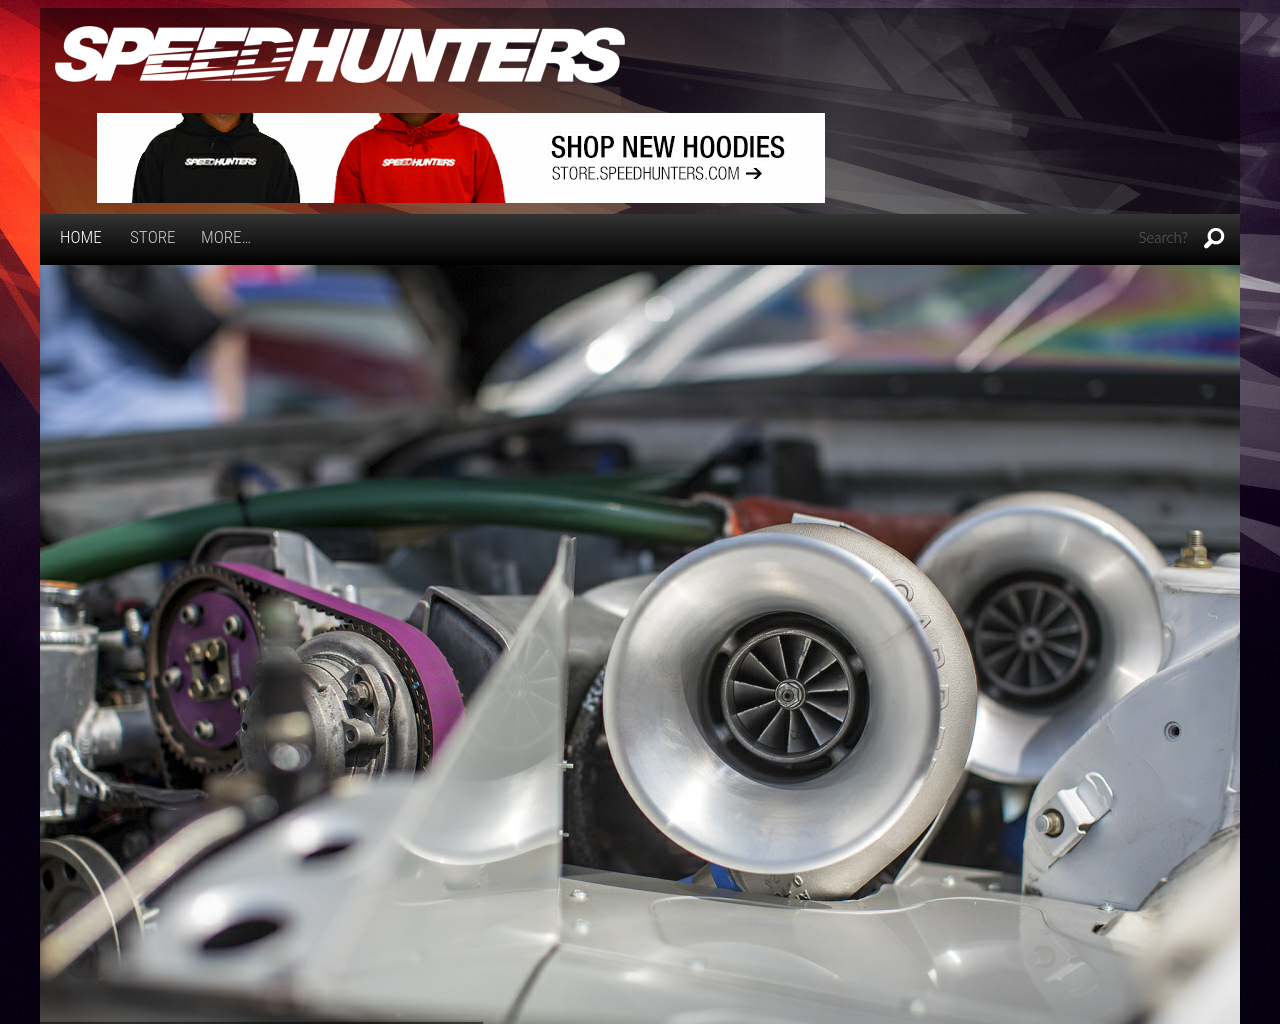 Speedhunters-Advertising-Reviews-Pricing